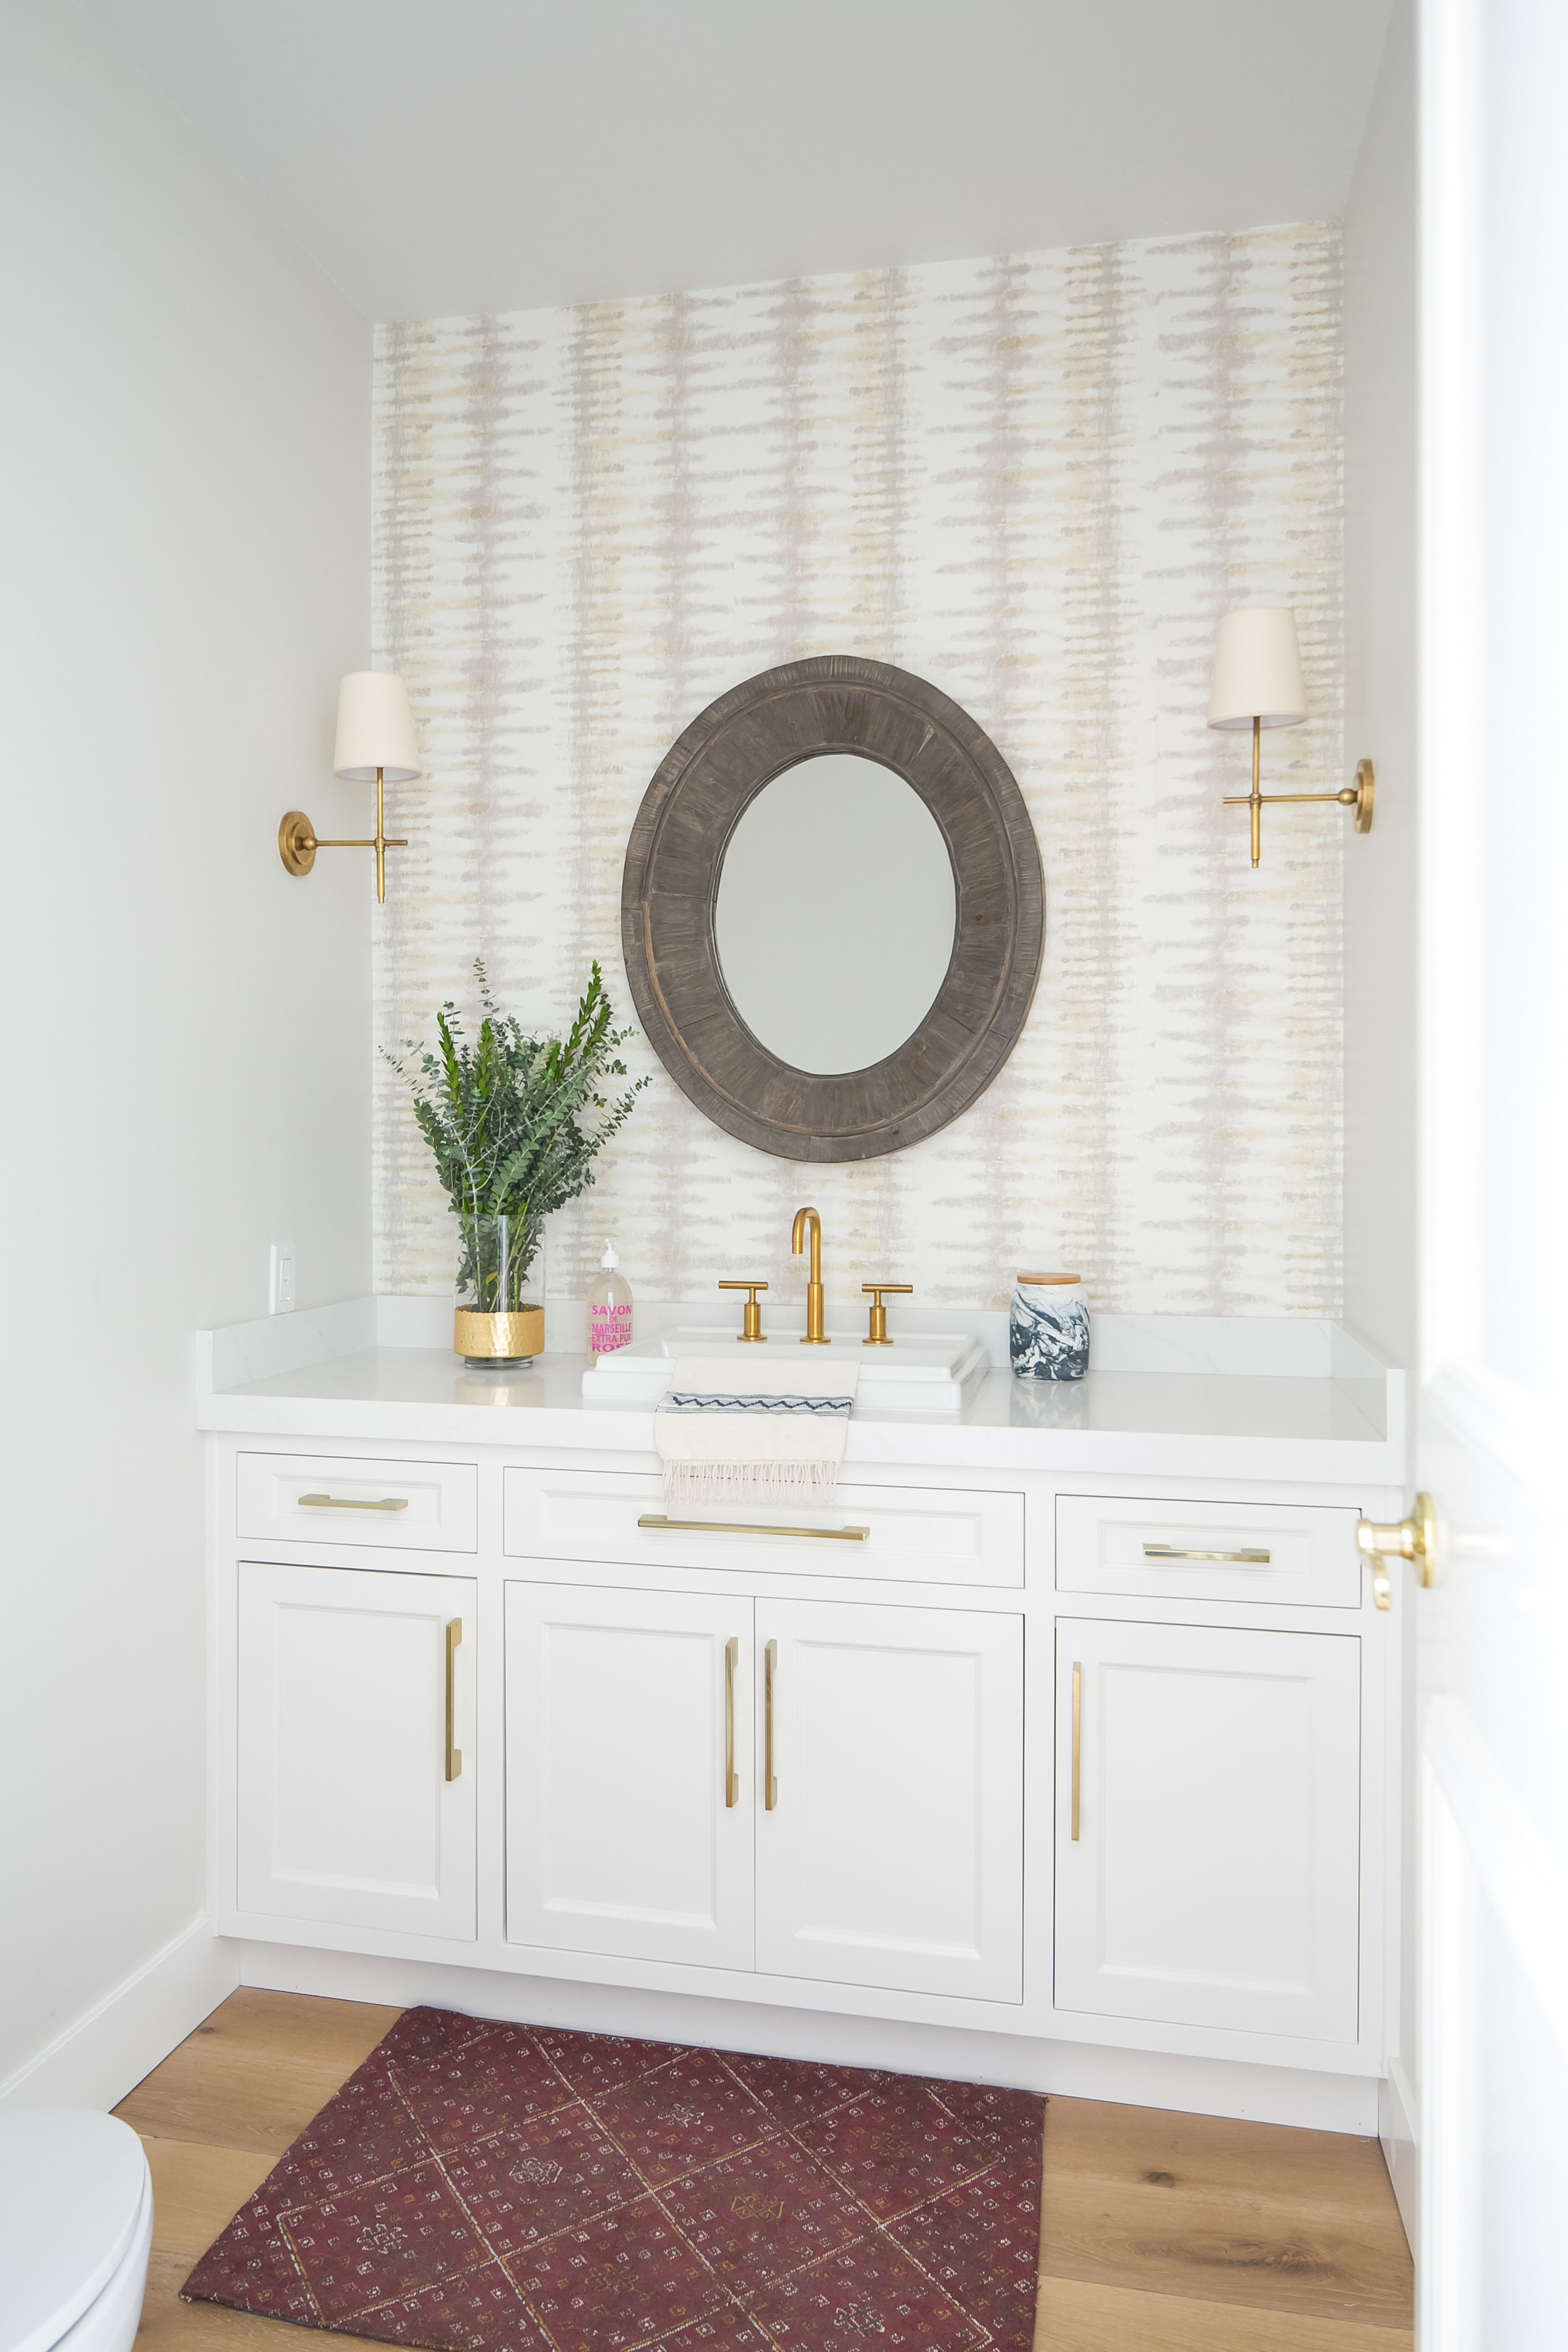 RosewoodInteriors_CotoProject66.JPG